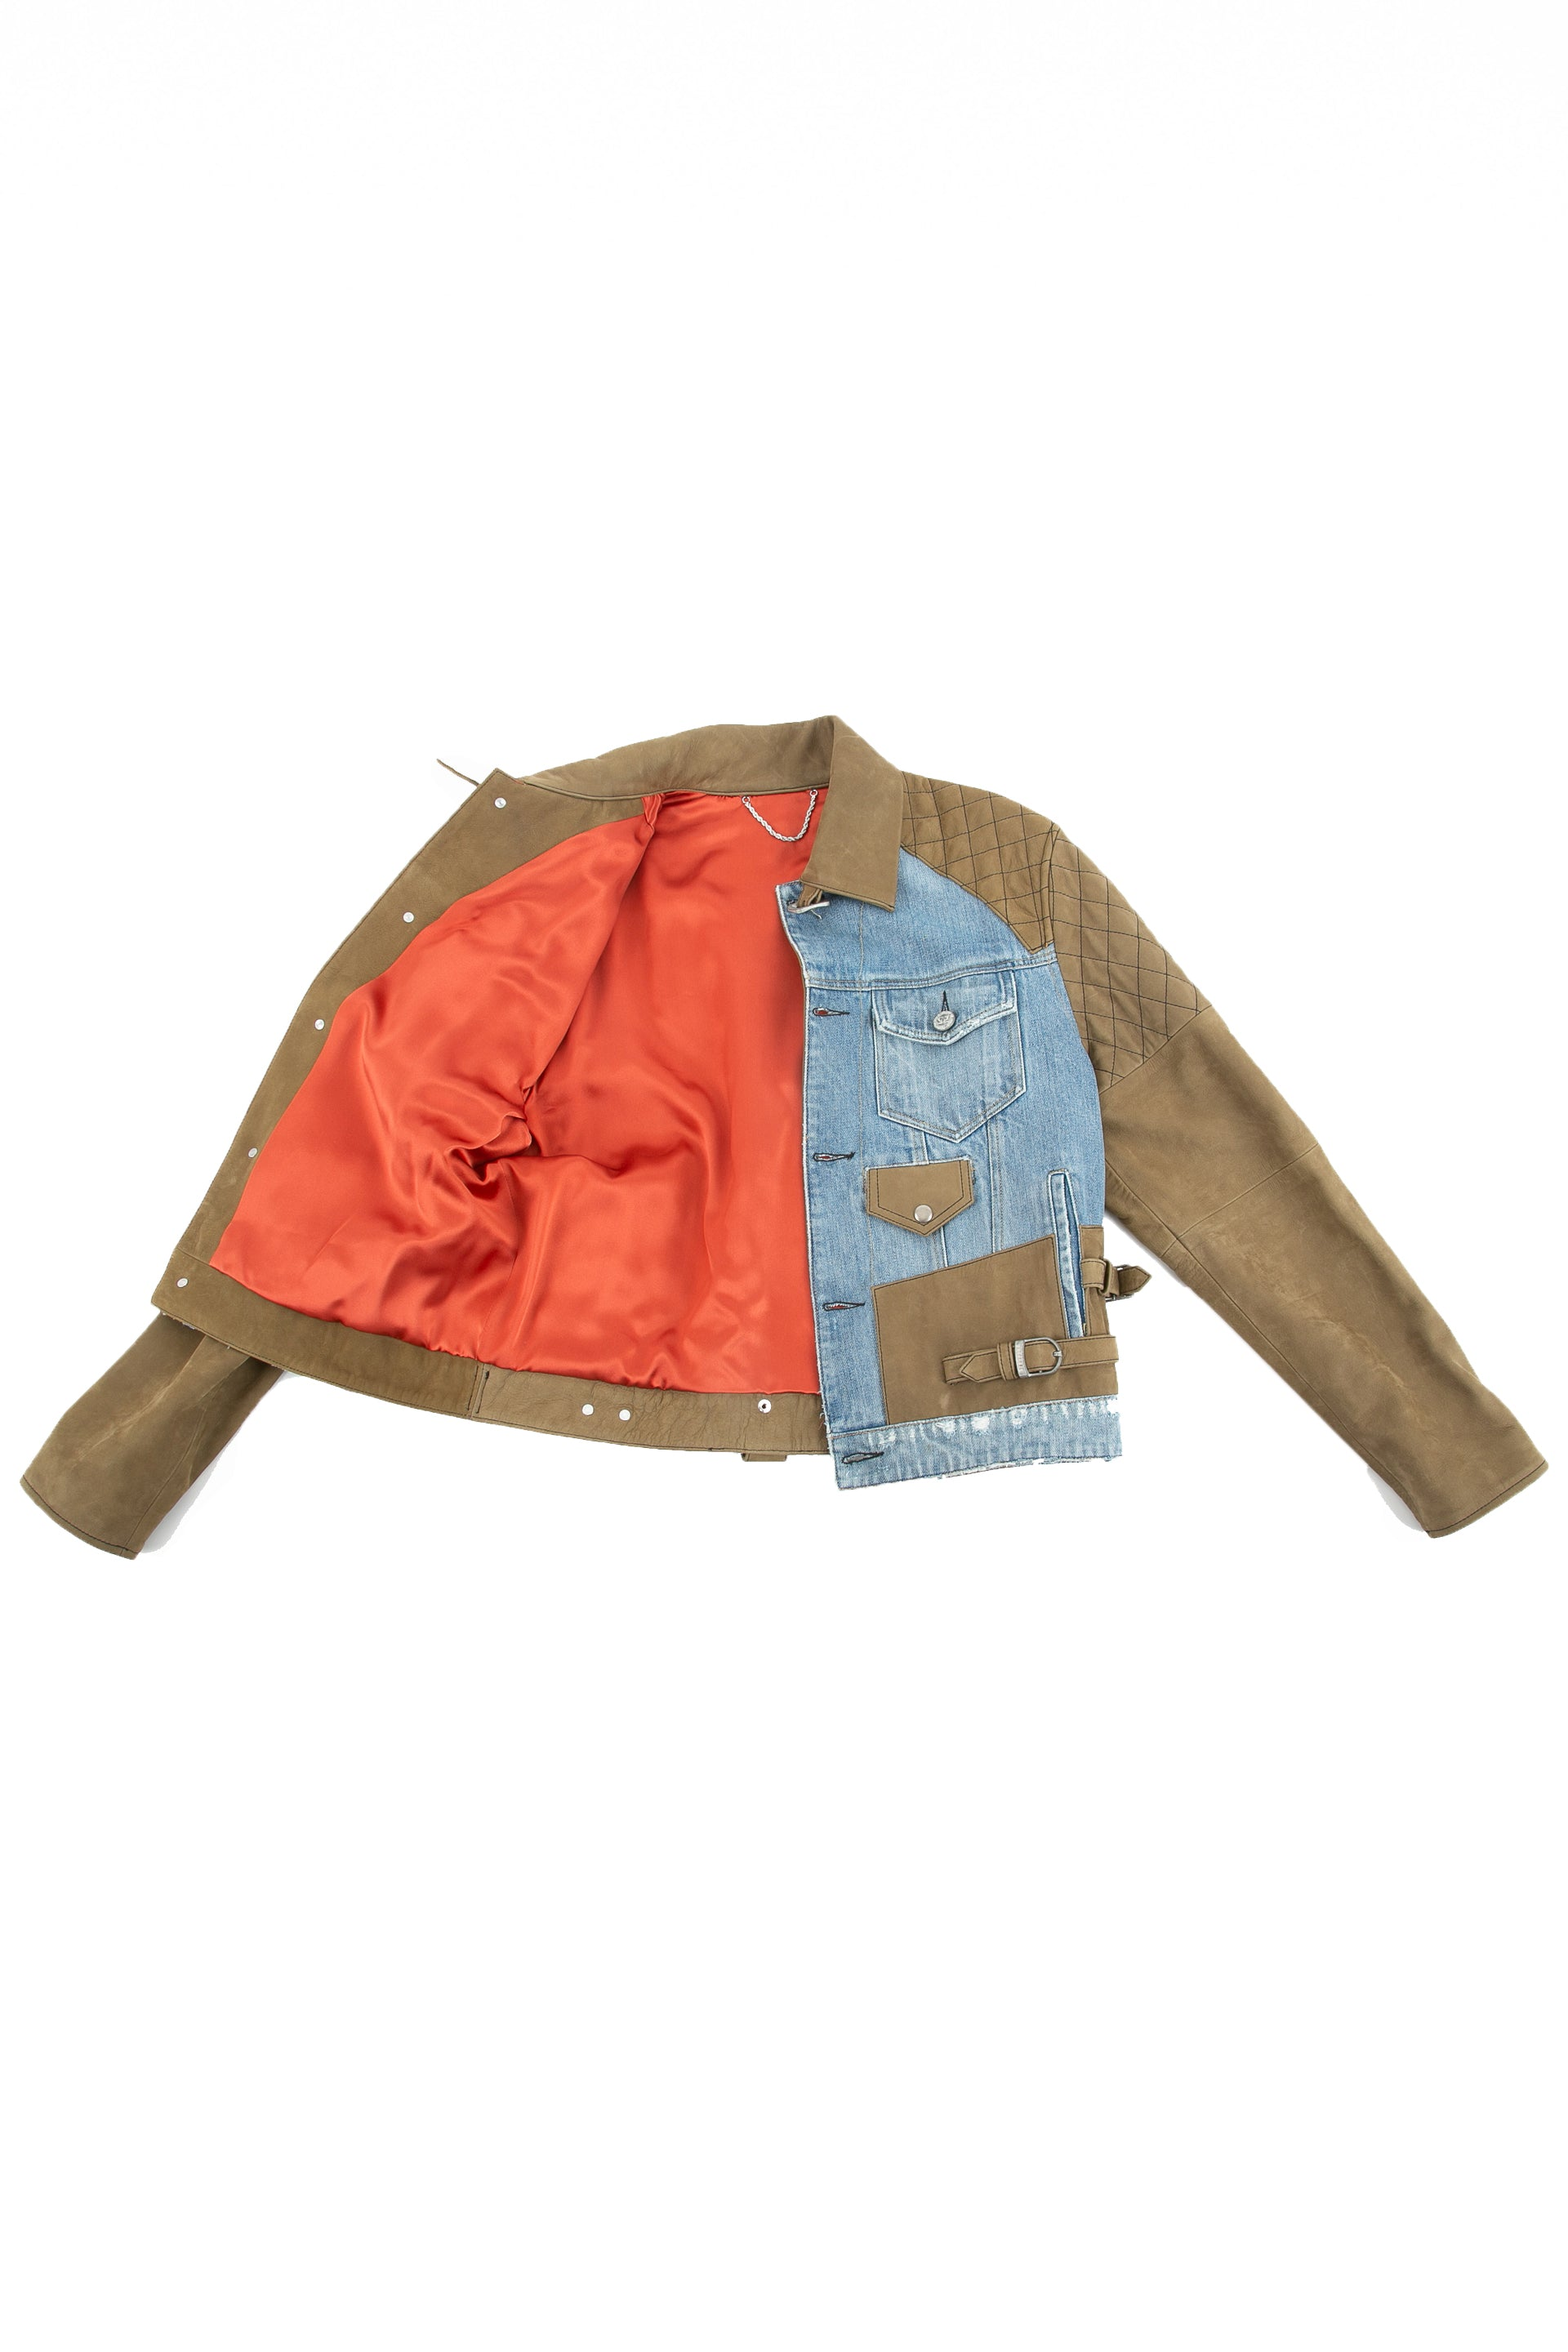 Inside of Tortuga leather and denim jacket